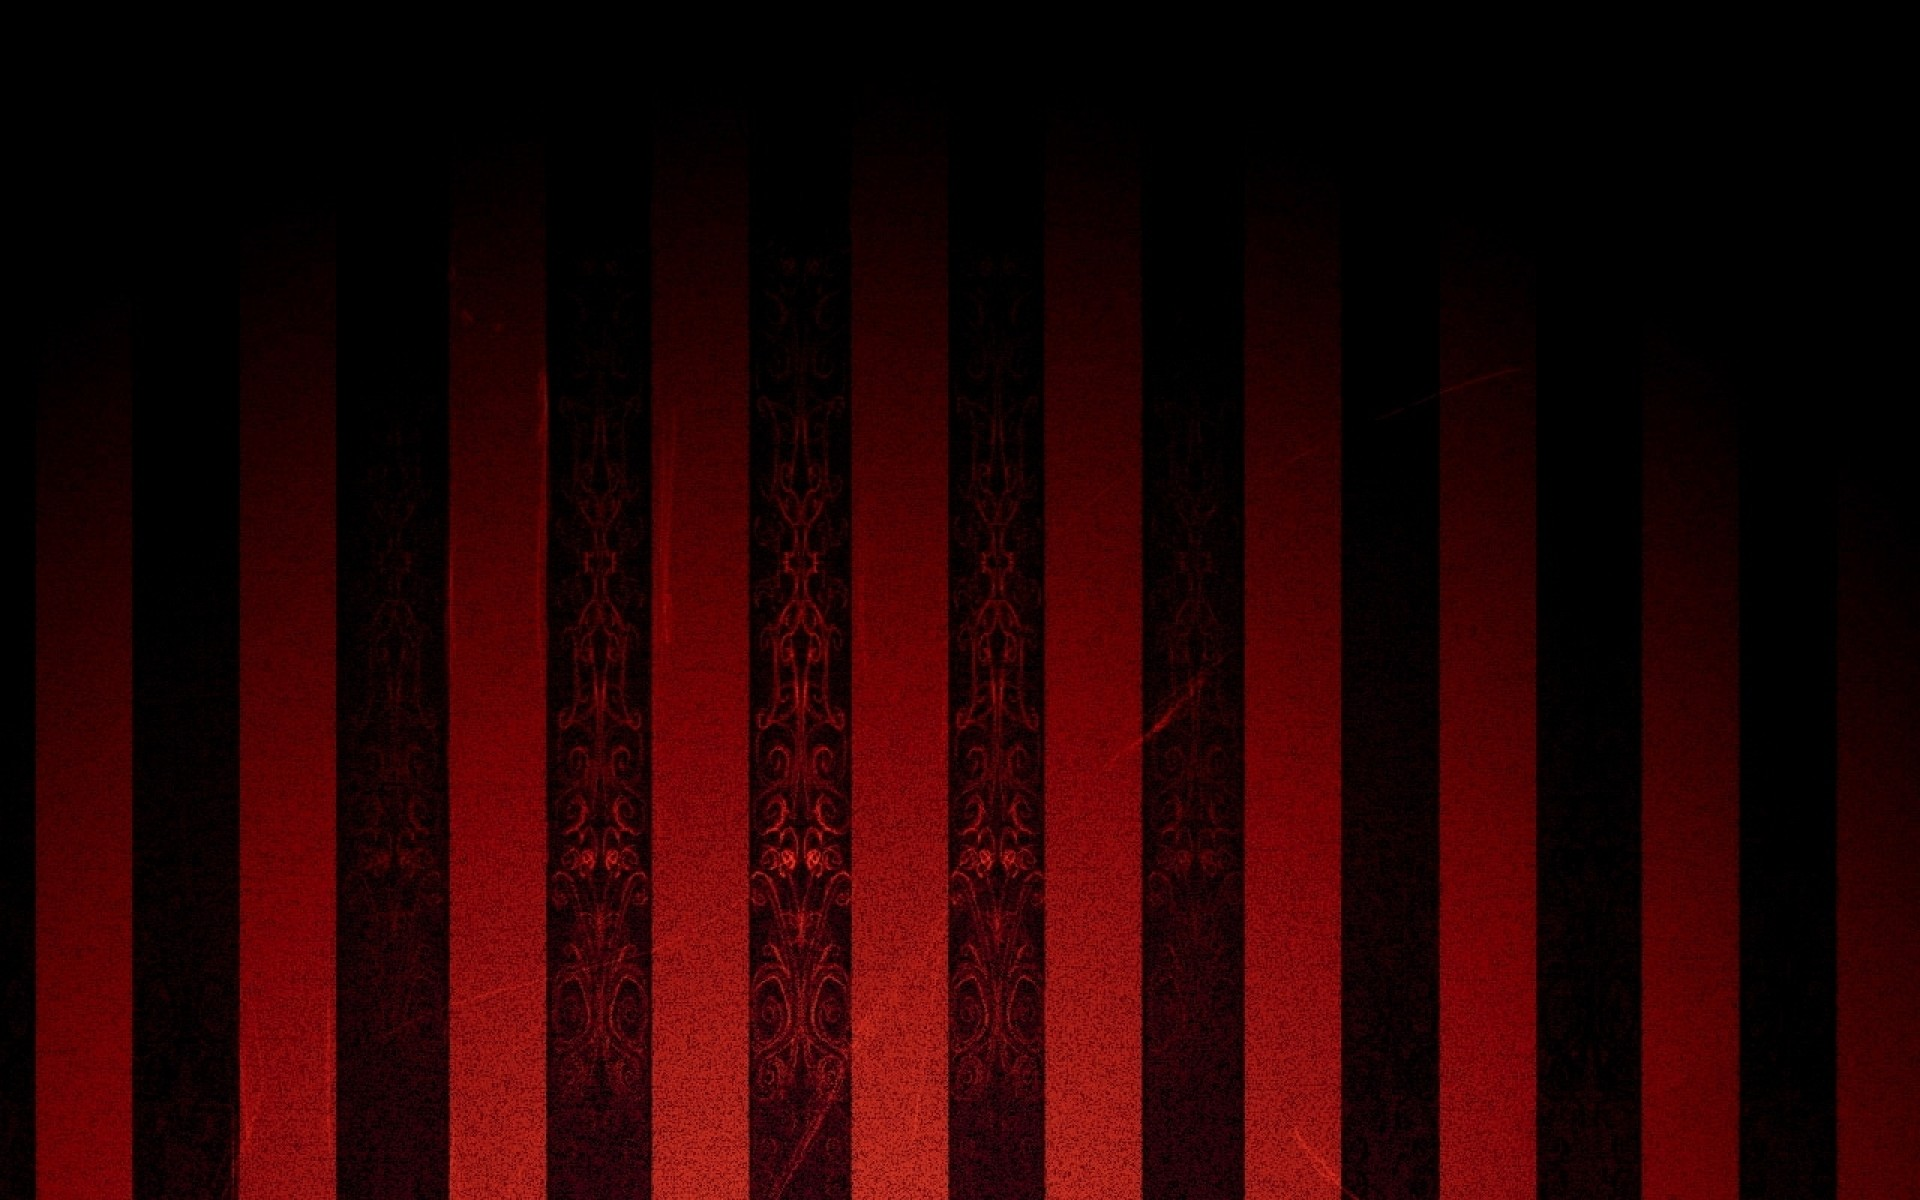 … Black and Red Abstract Full HD Wallpaper 479   Amazing Wallpaperz